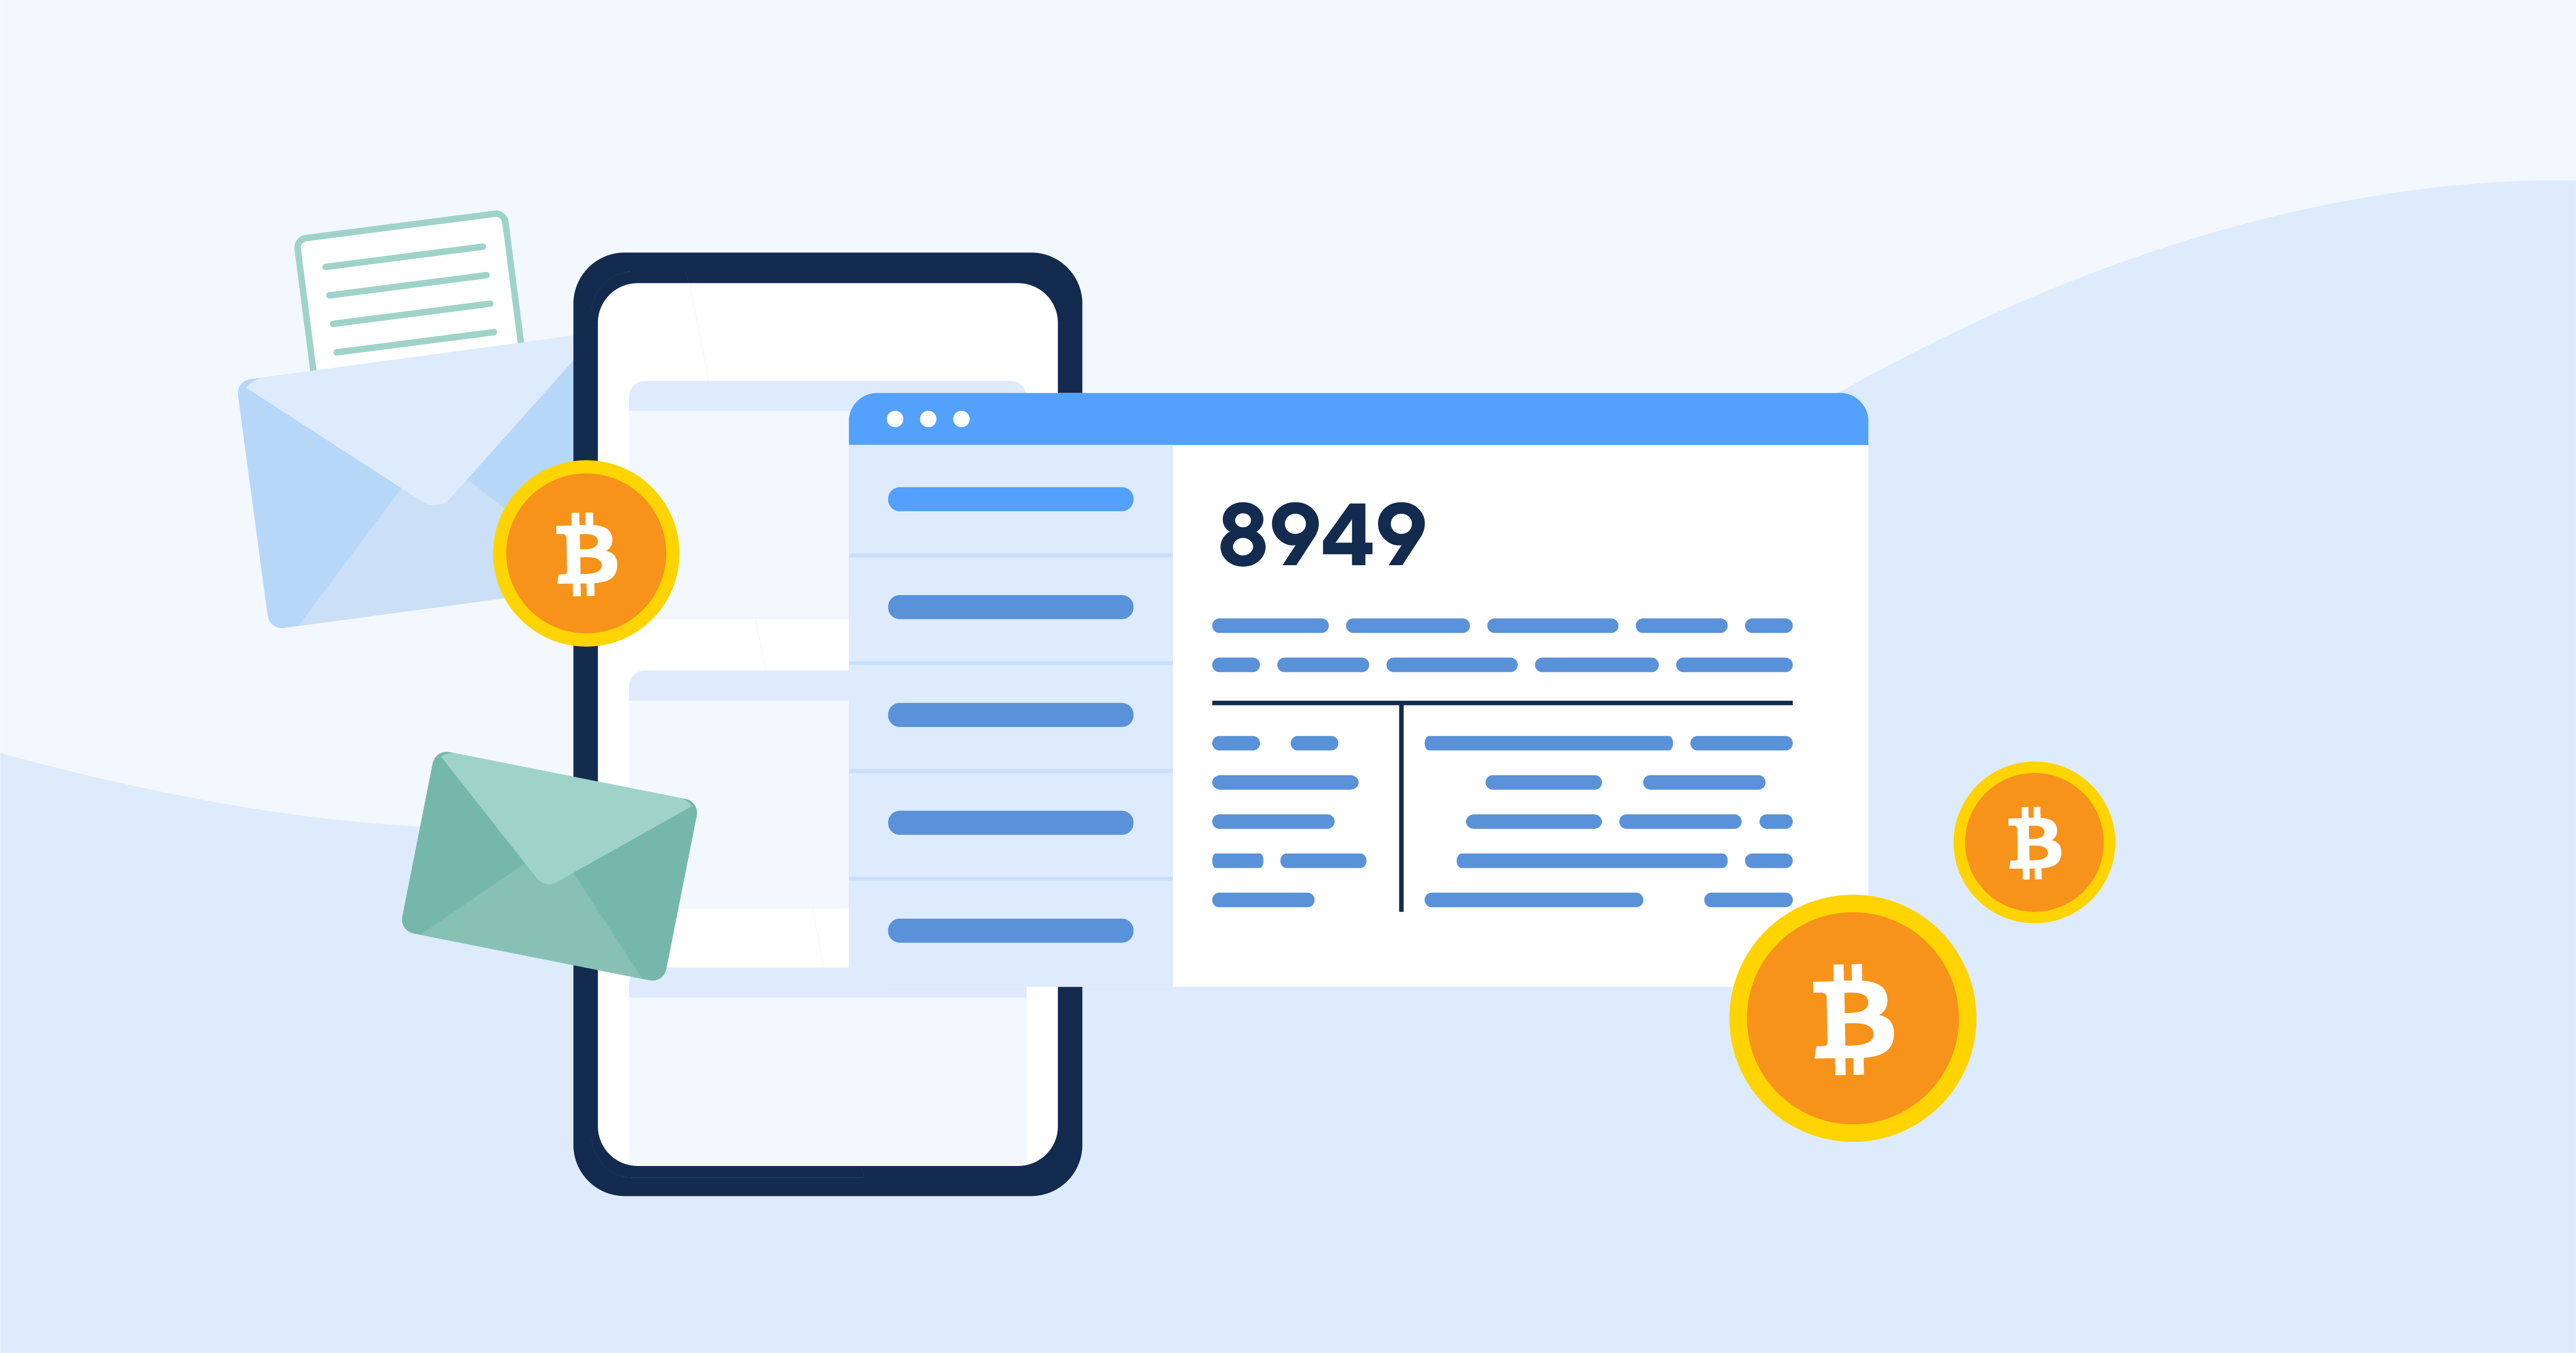 Mailing in form 8949 for e-Filing cryptocurrency traders